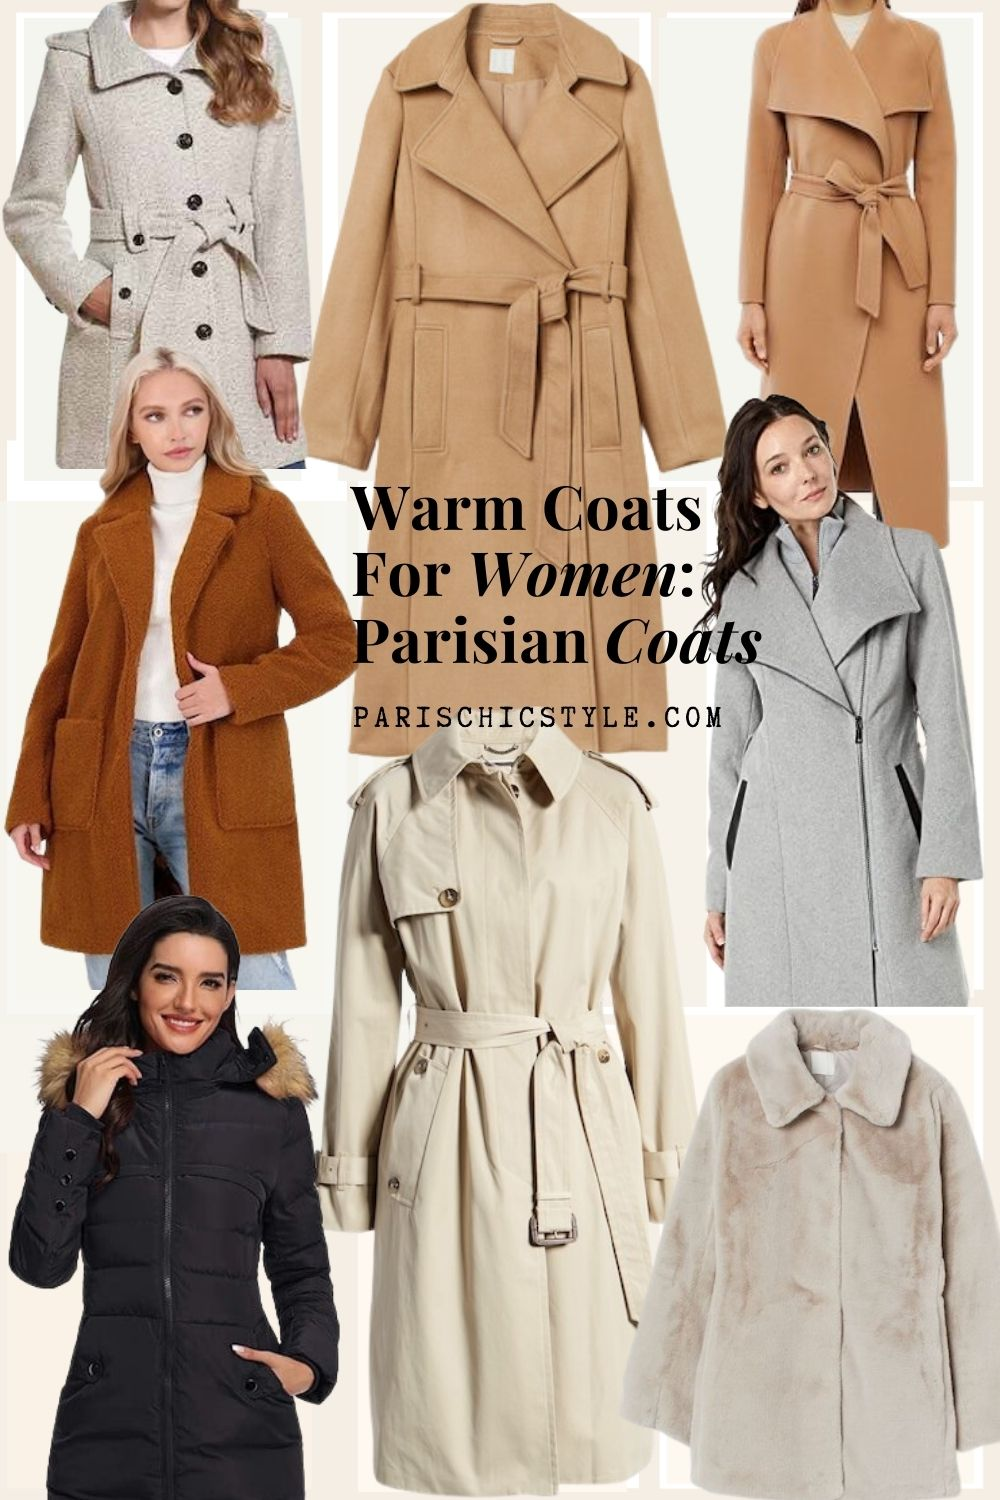 Best Coats For Women Travel Sightseeing Streetstyle Walking Work Weddings Paris Chic Style Trench Coats Peacoats Faux Fur Teddy Coats Puffer (1)